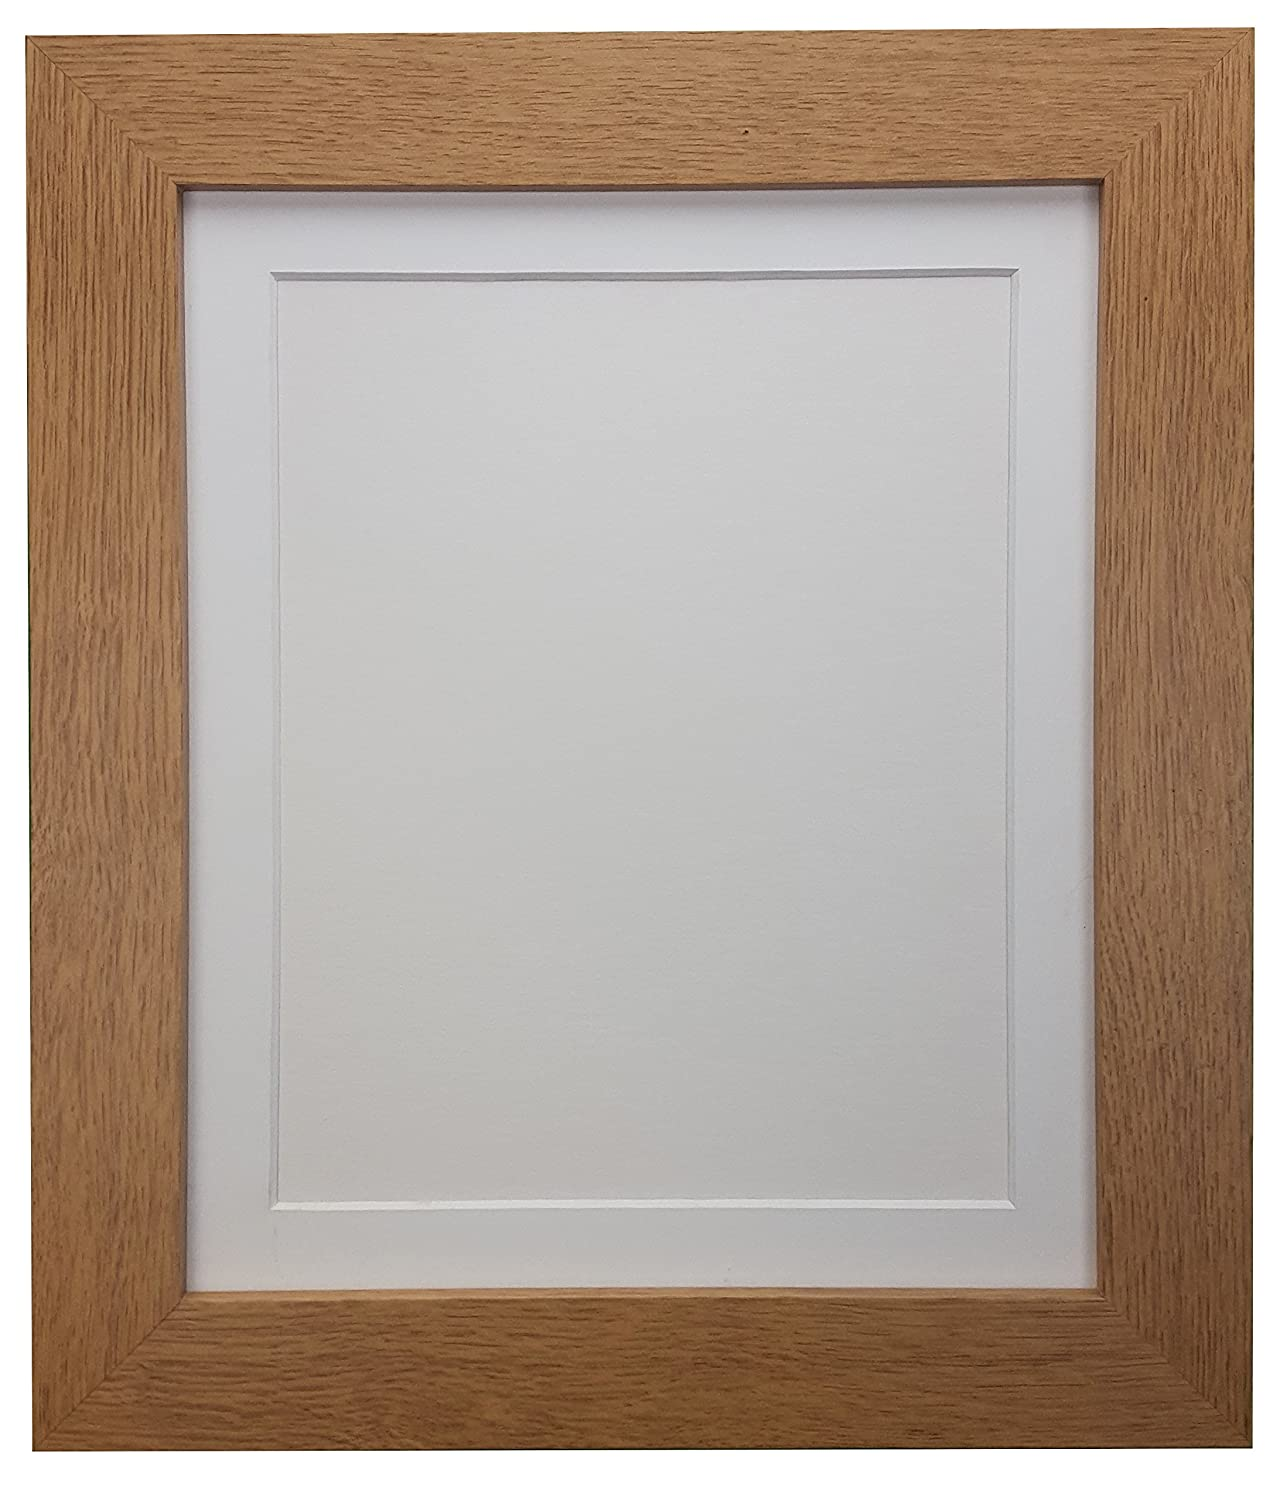 Large Oak Picture Frame with Mount Choice of Ivory Black or White Mount all size